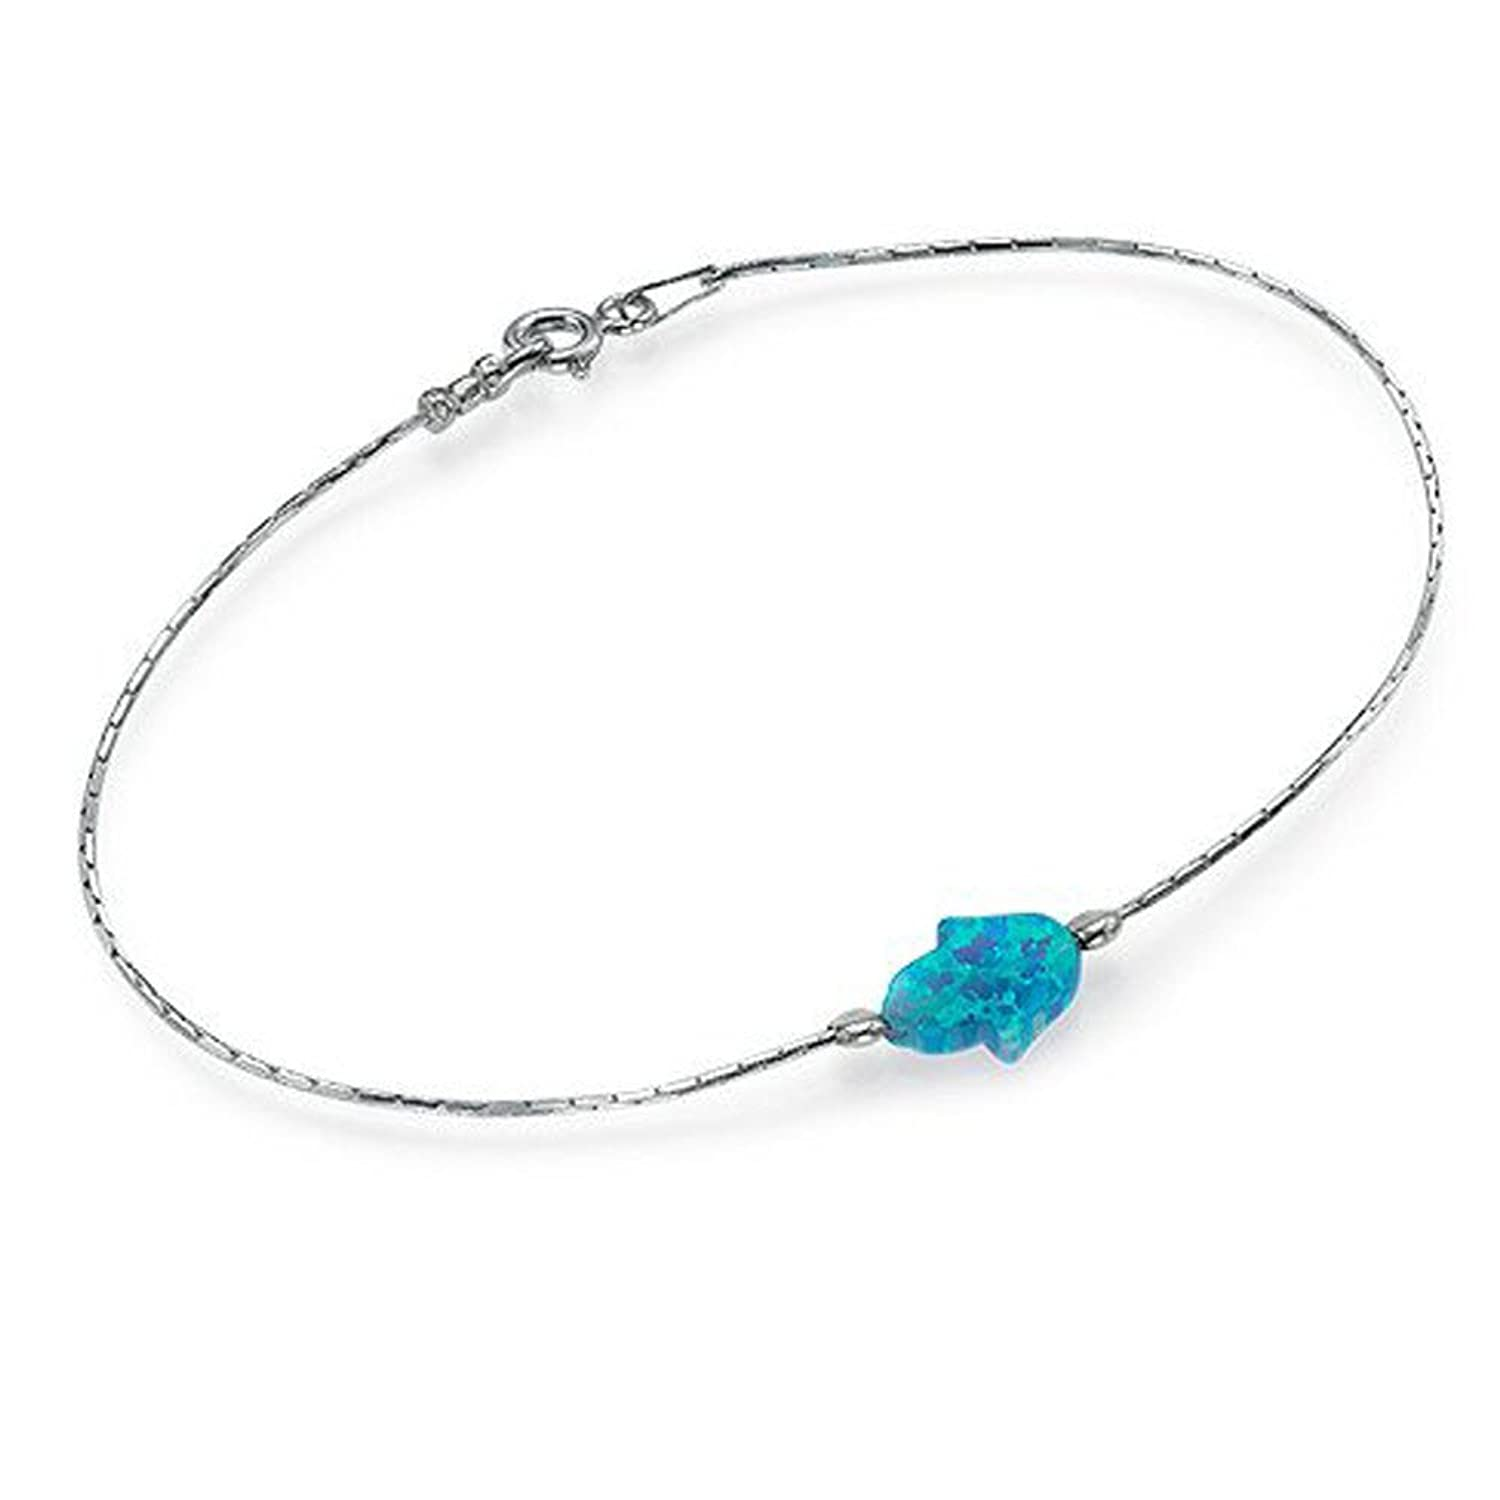 by bet opal hamsa alef opalhamsamultiplebracelet jewelry silver loading bracelet paula in colorful zoom